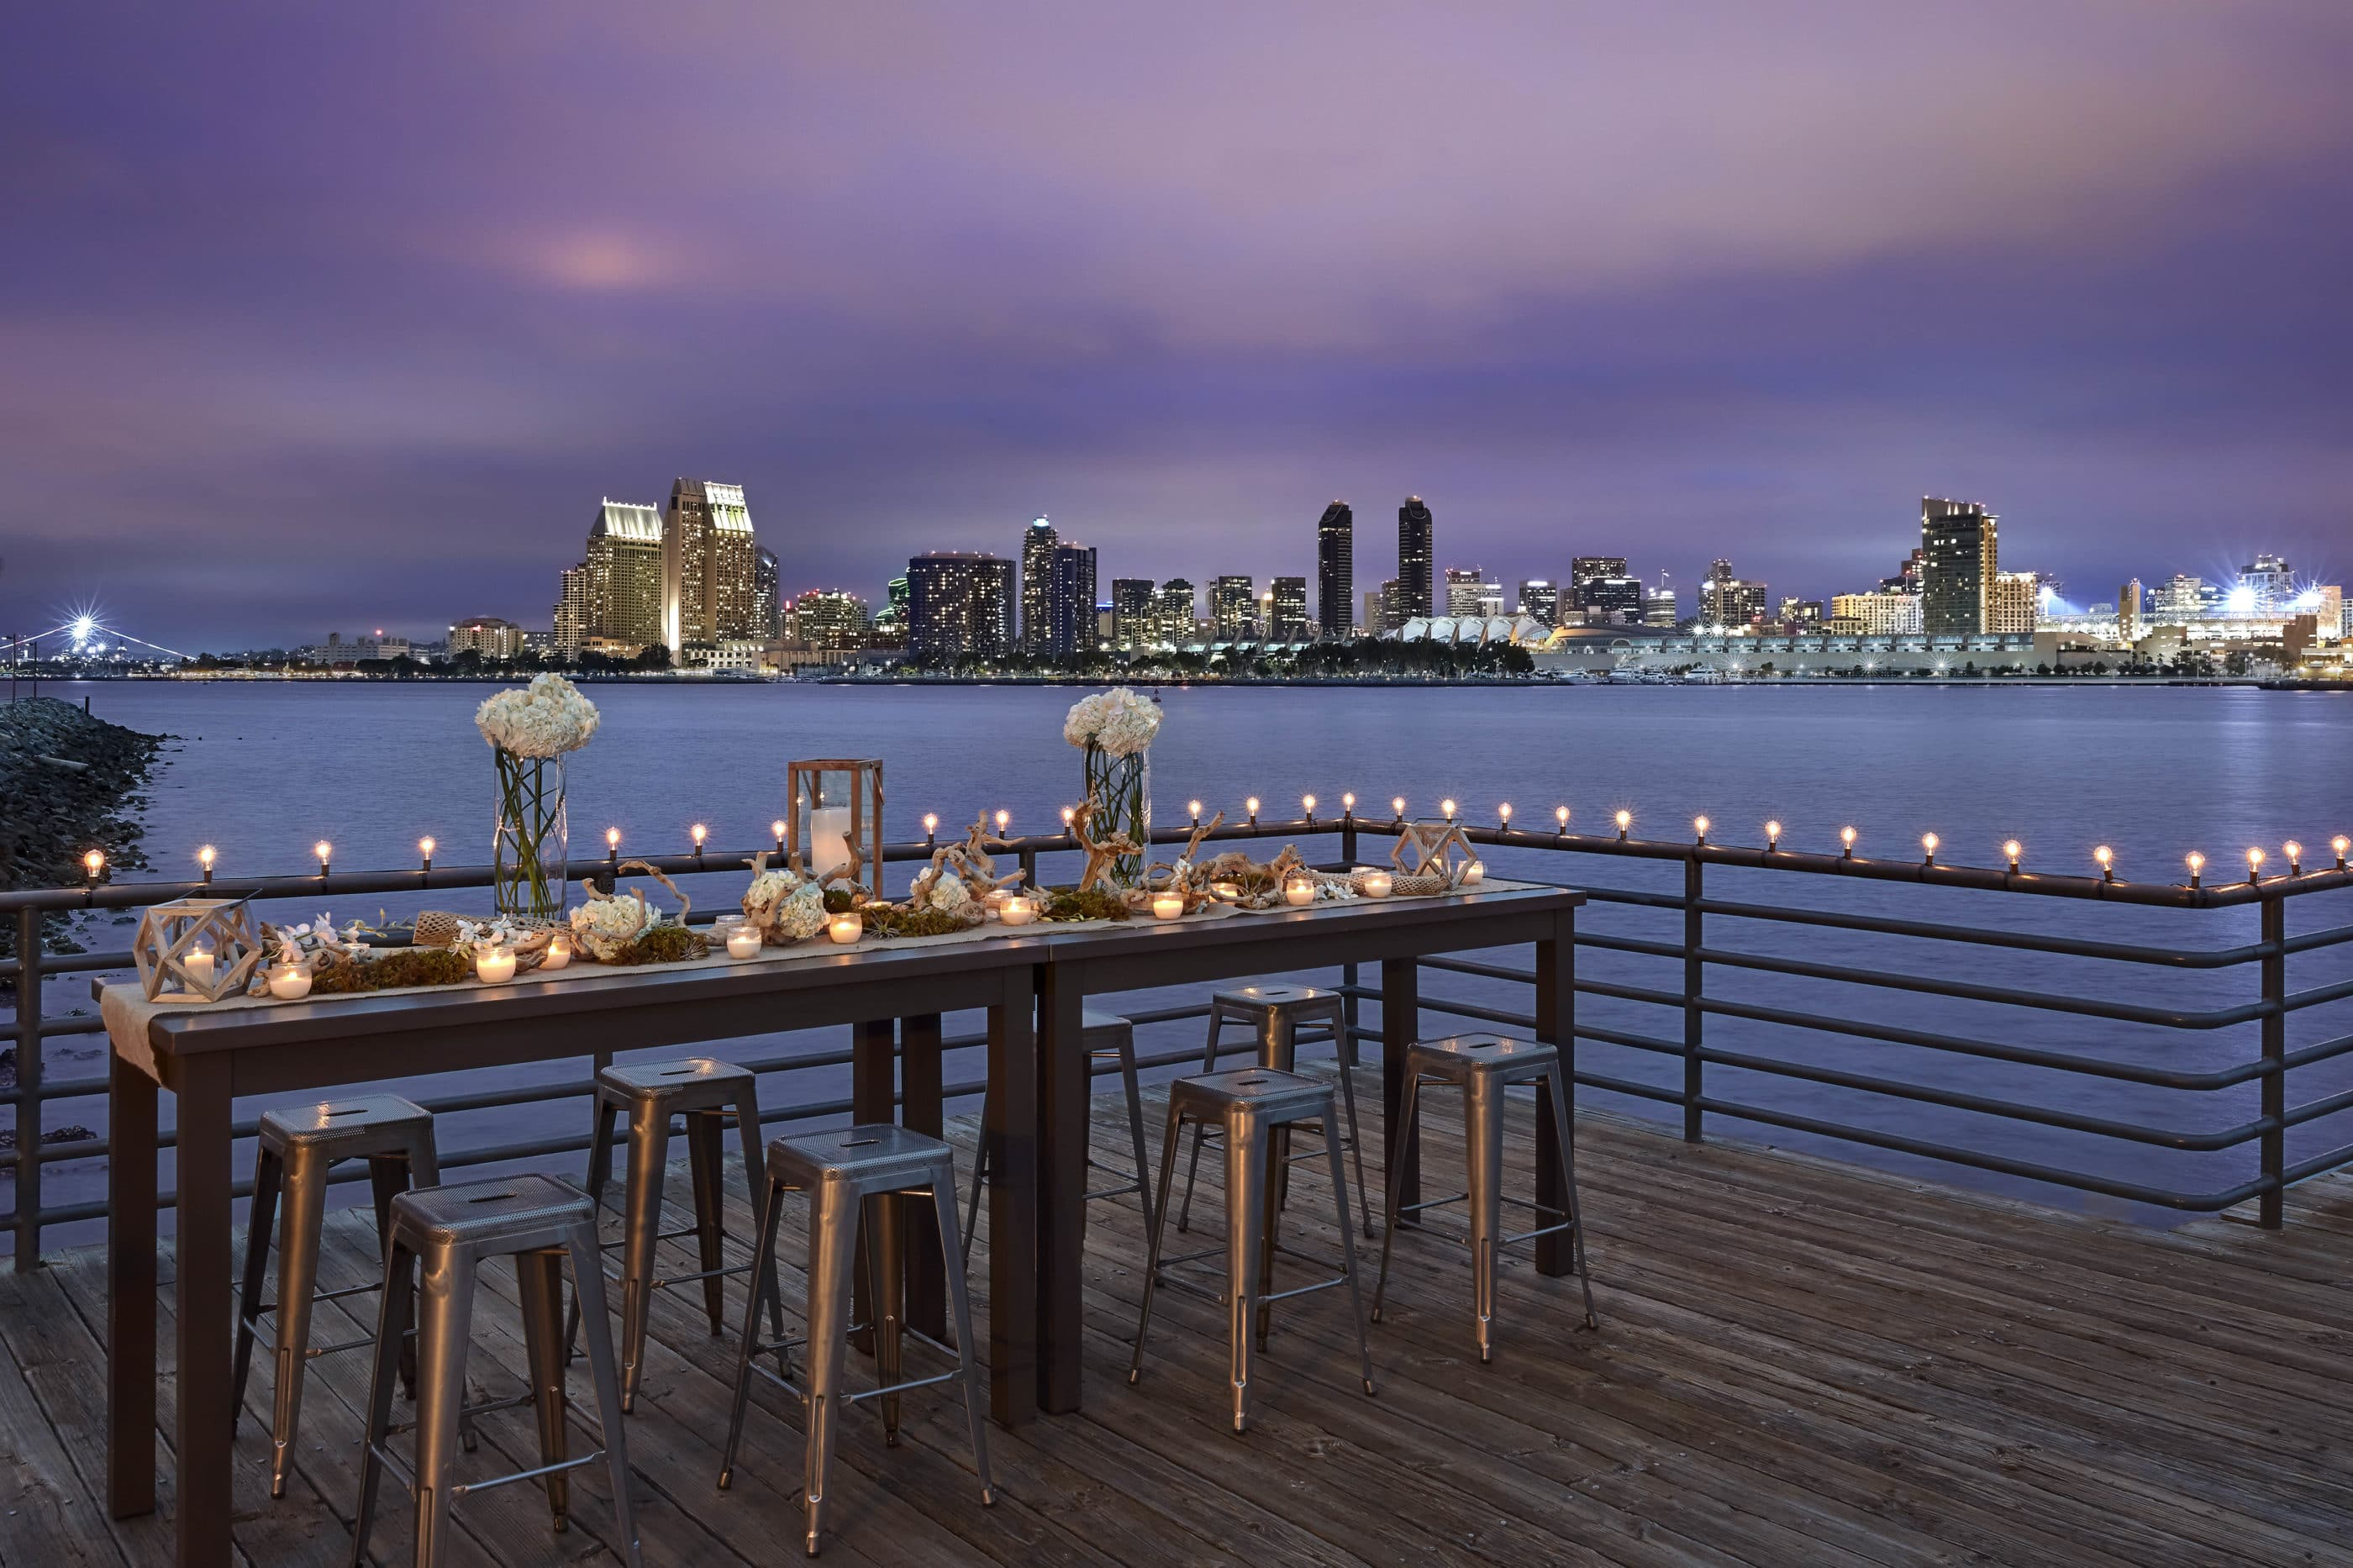 A decorated table with barstools on a patio with a view to downtown San Diego at dusk.